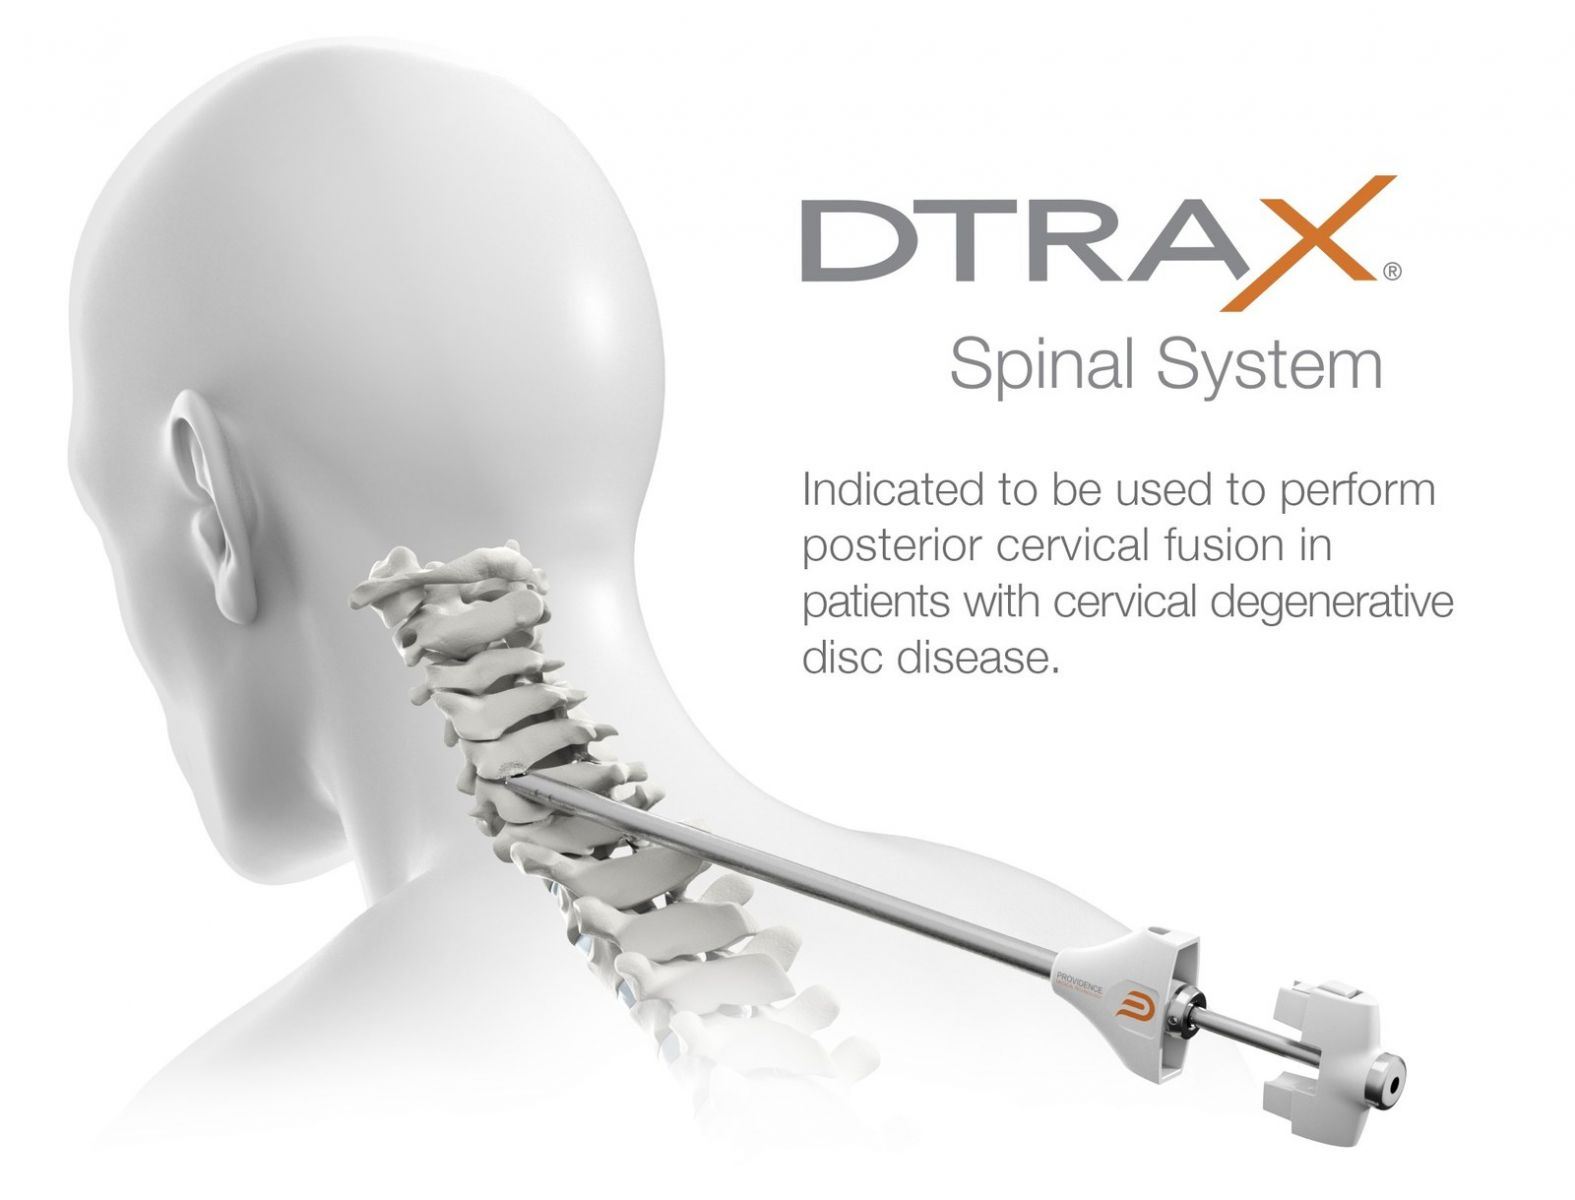 Providence Medical Technology DTRAX Spinal System